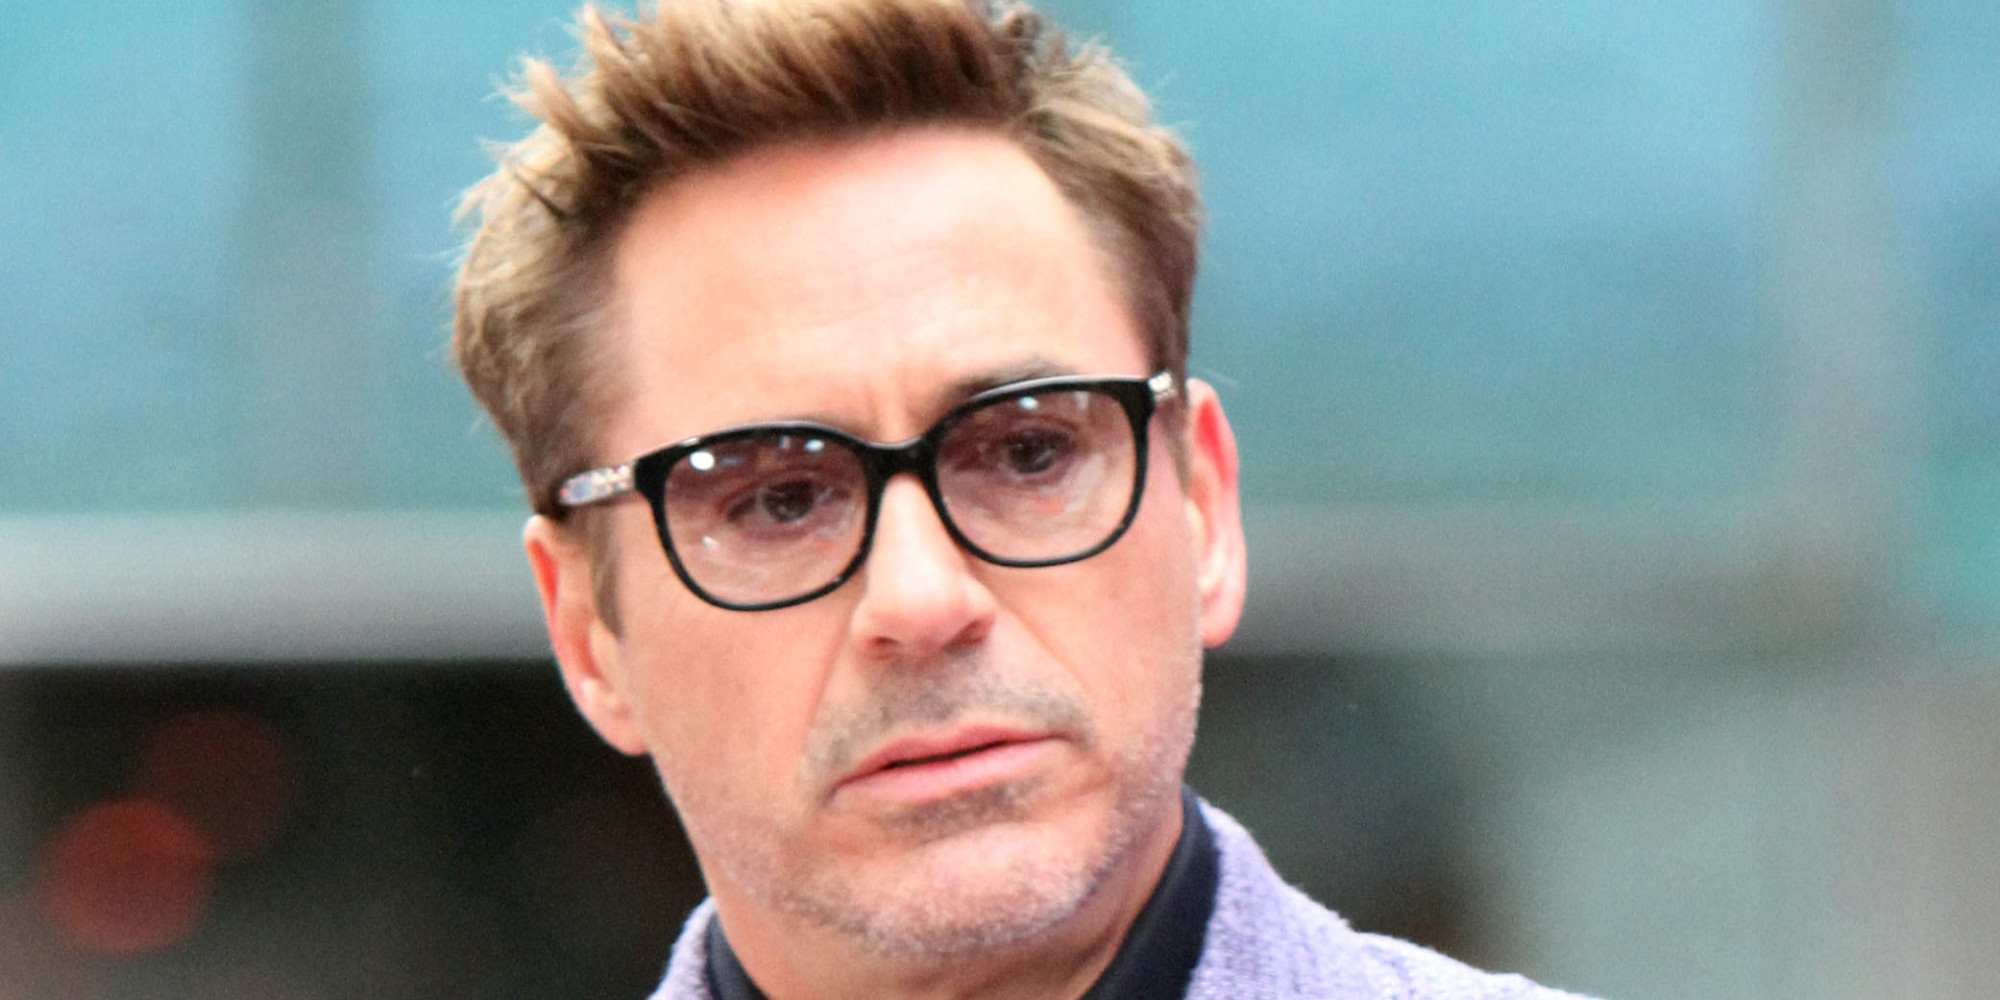 Robert Downey Jr. Wishes He'd Left That Uncomfortable Interview Sooner ...